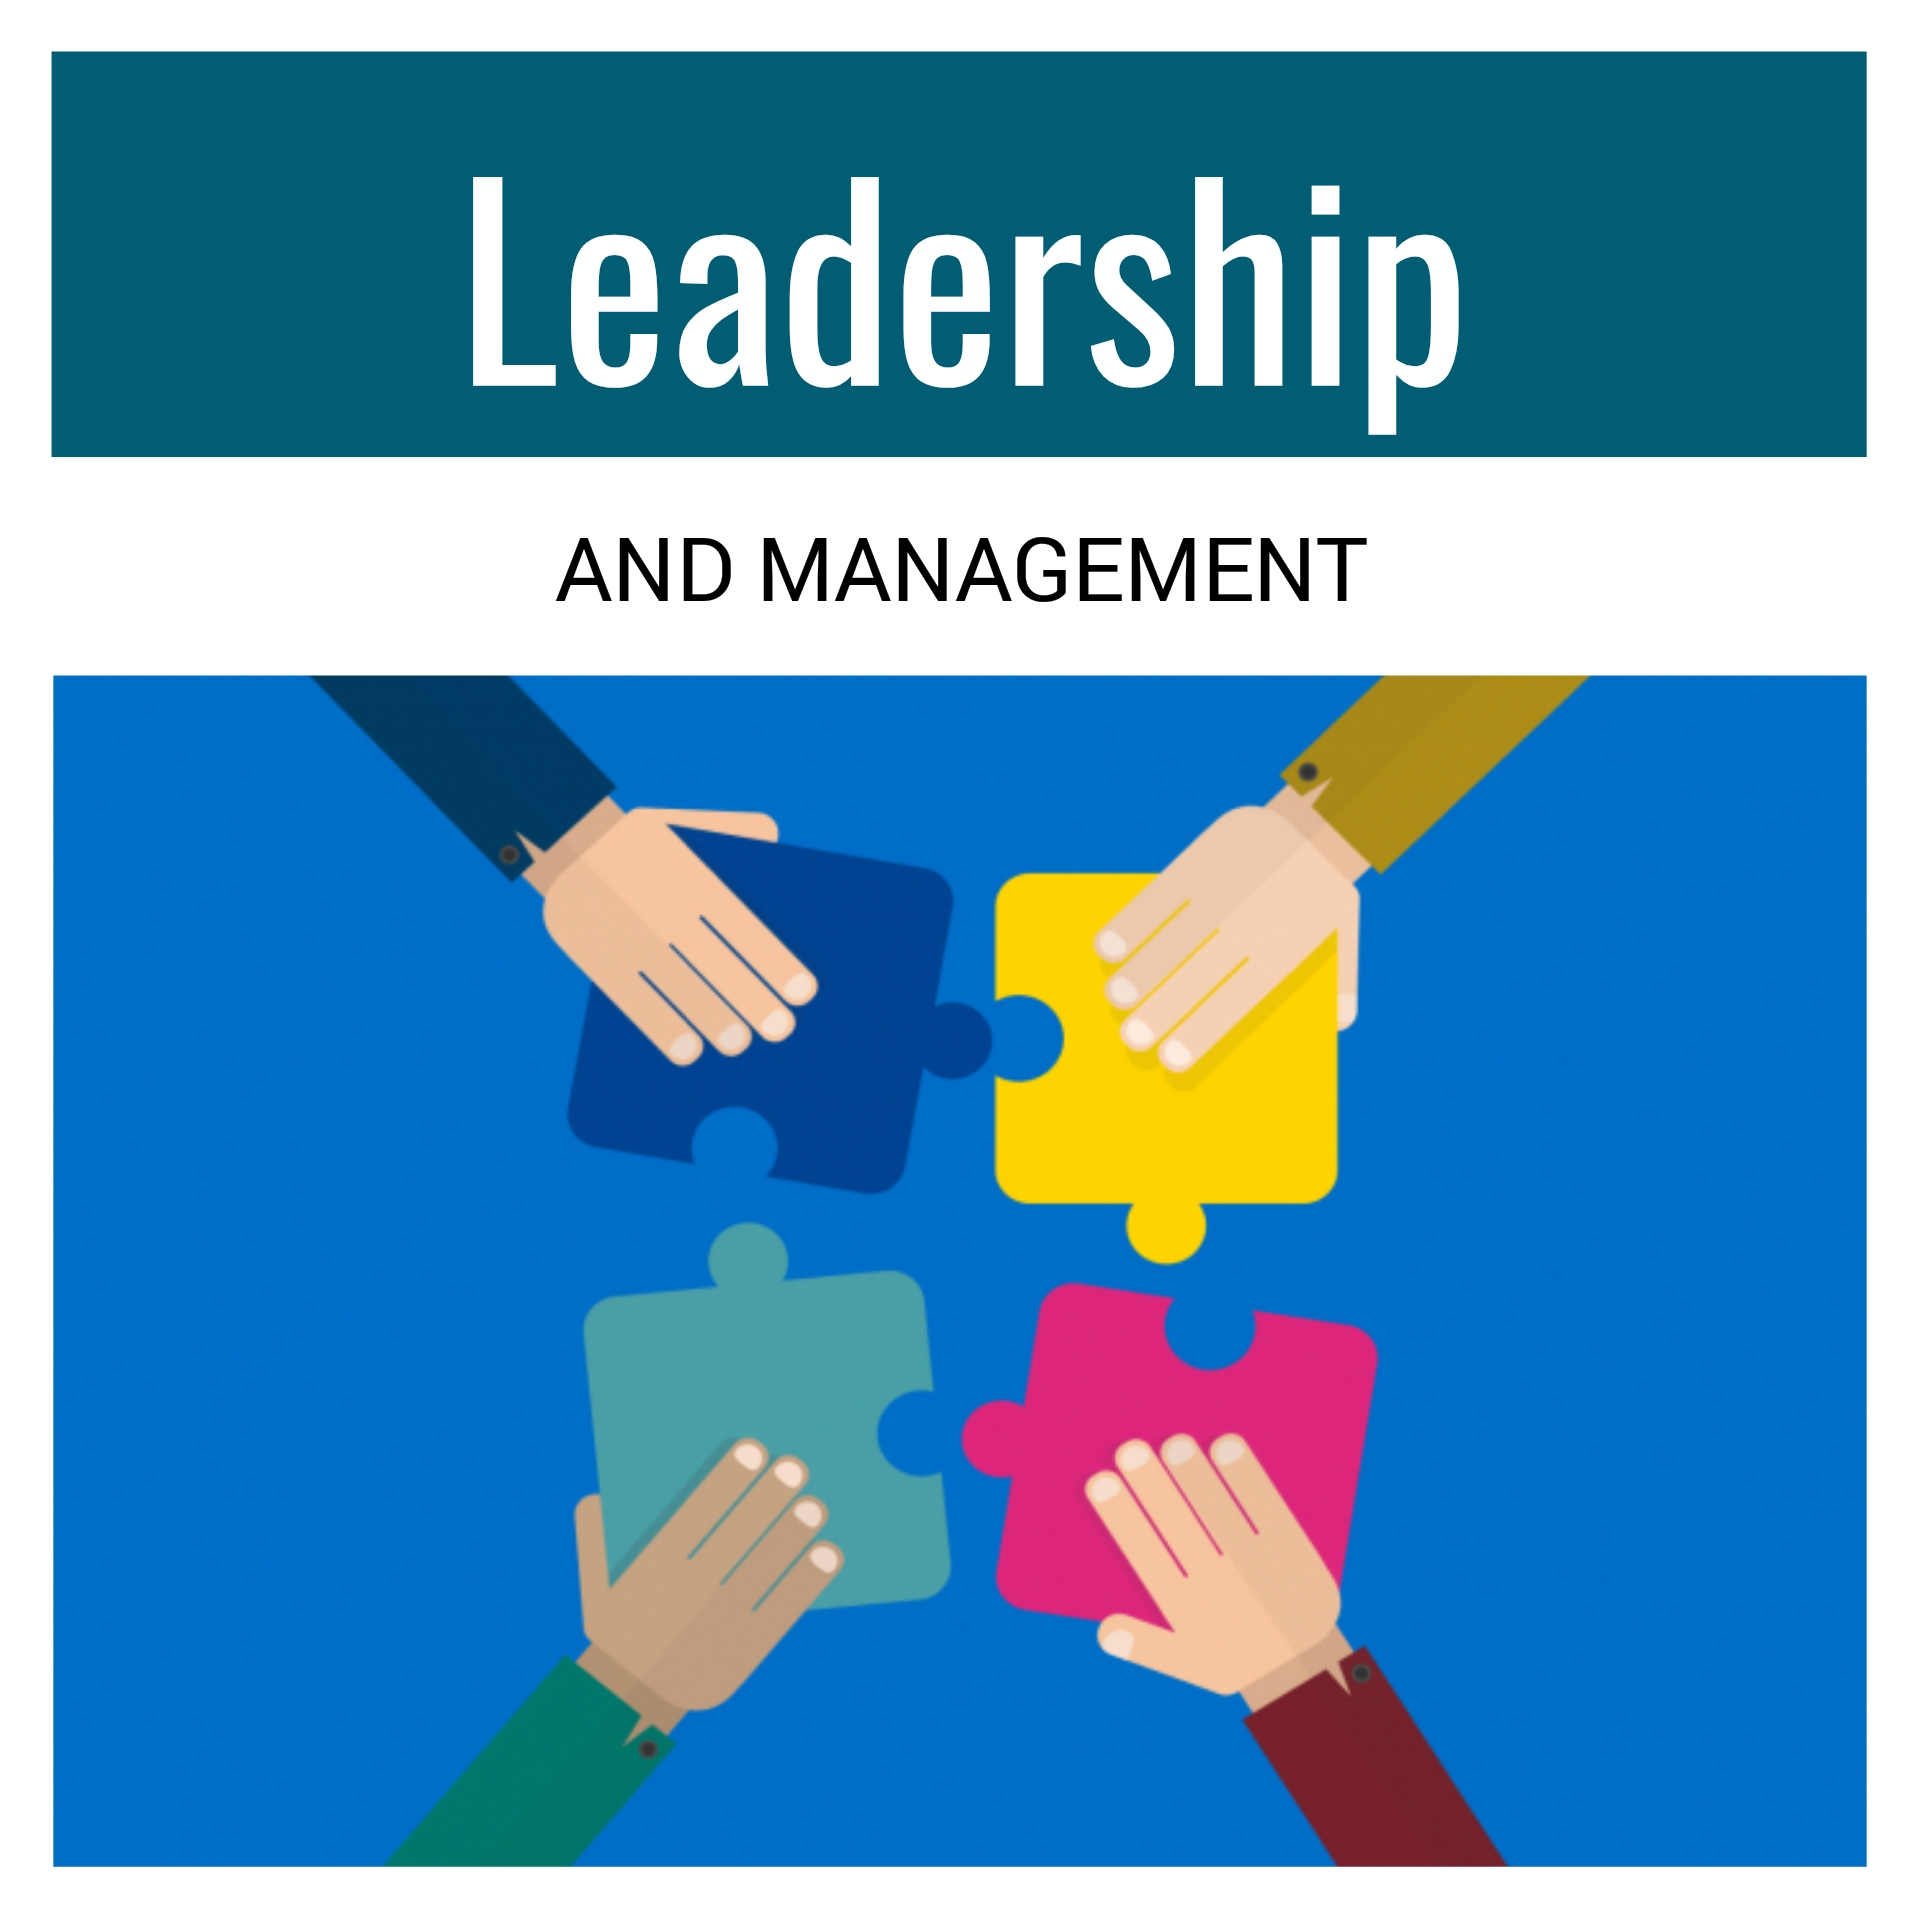 Leadership And Management 2B 2021 - 2022